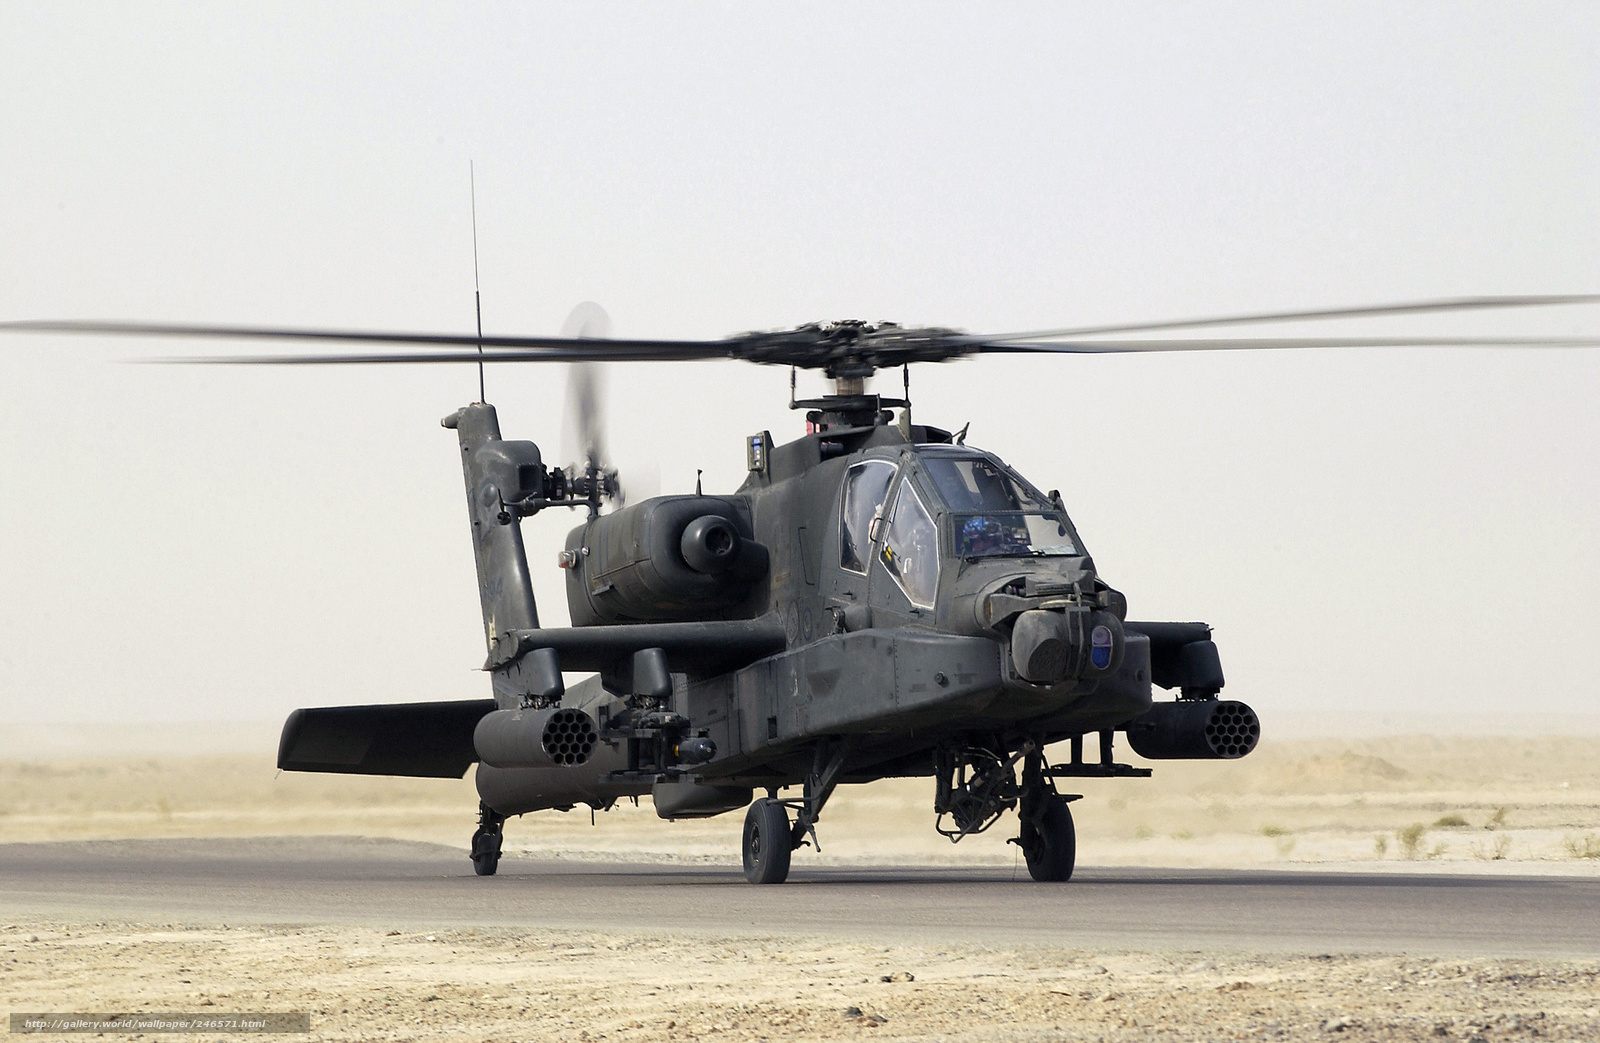 Download wallpaper AH 64 Apache helicopter desktop wallpaper in 1600x1043